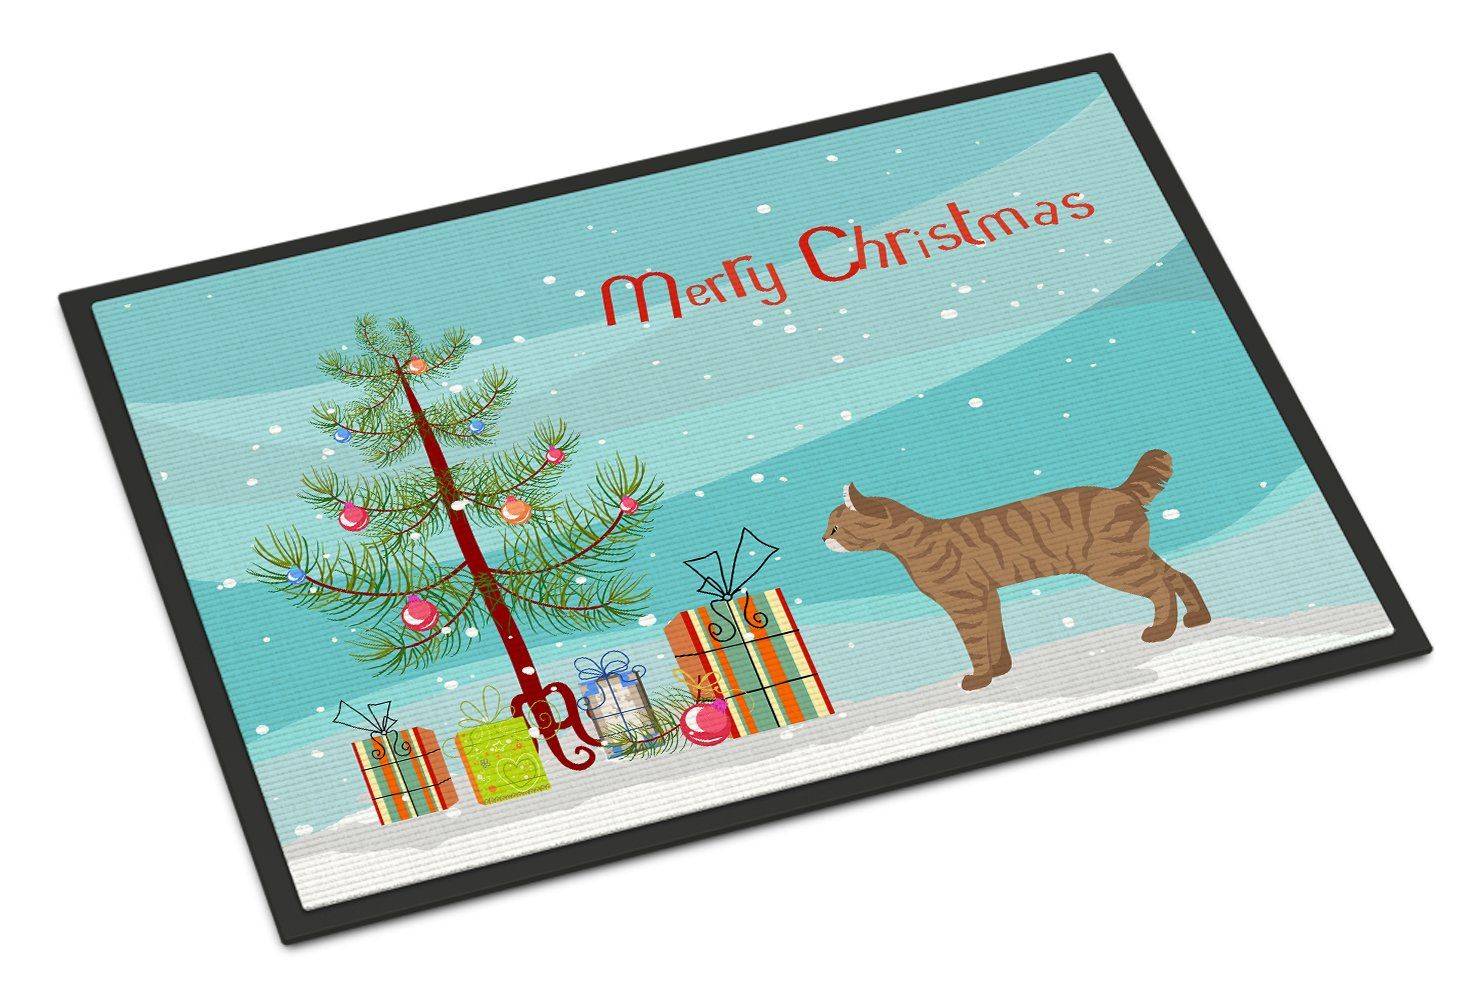 Highlander Lynx #1 Cat Merry Christmas Indoor or Outdoor Mat 24x36 CK4630JMAT by Caroline's Treasures